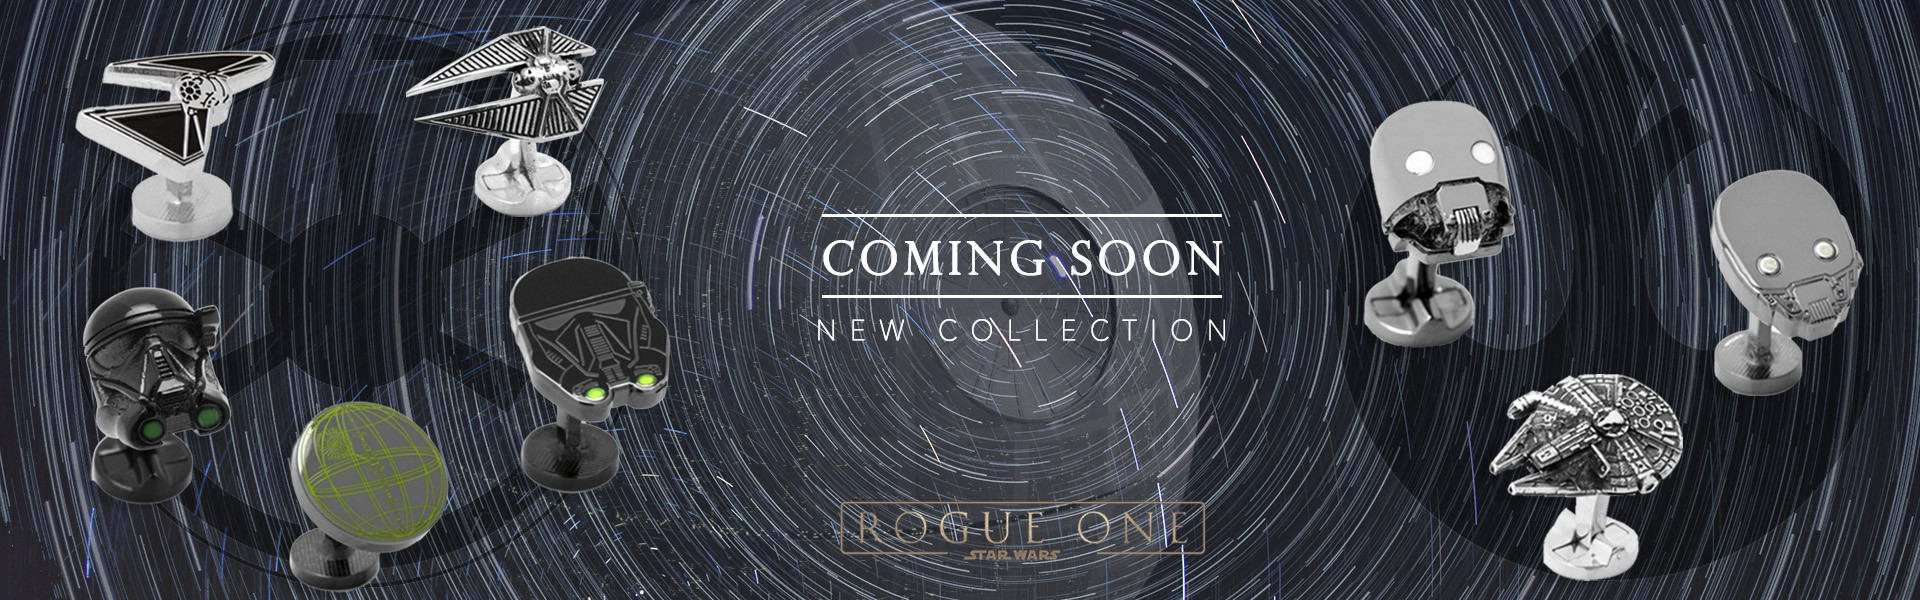 Star Wars New Collection - Rogue One